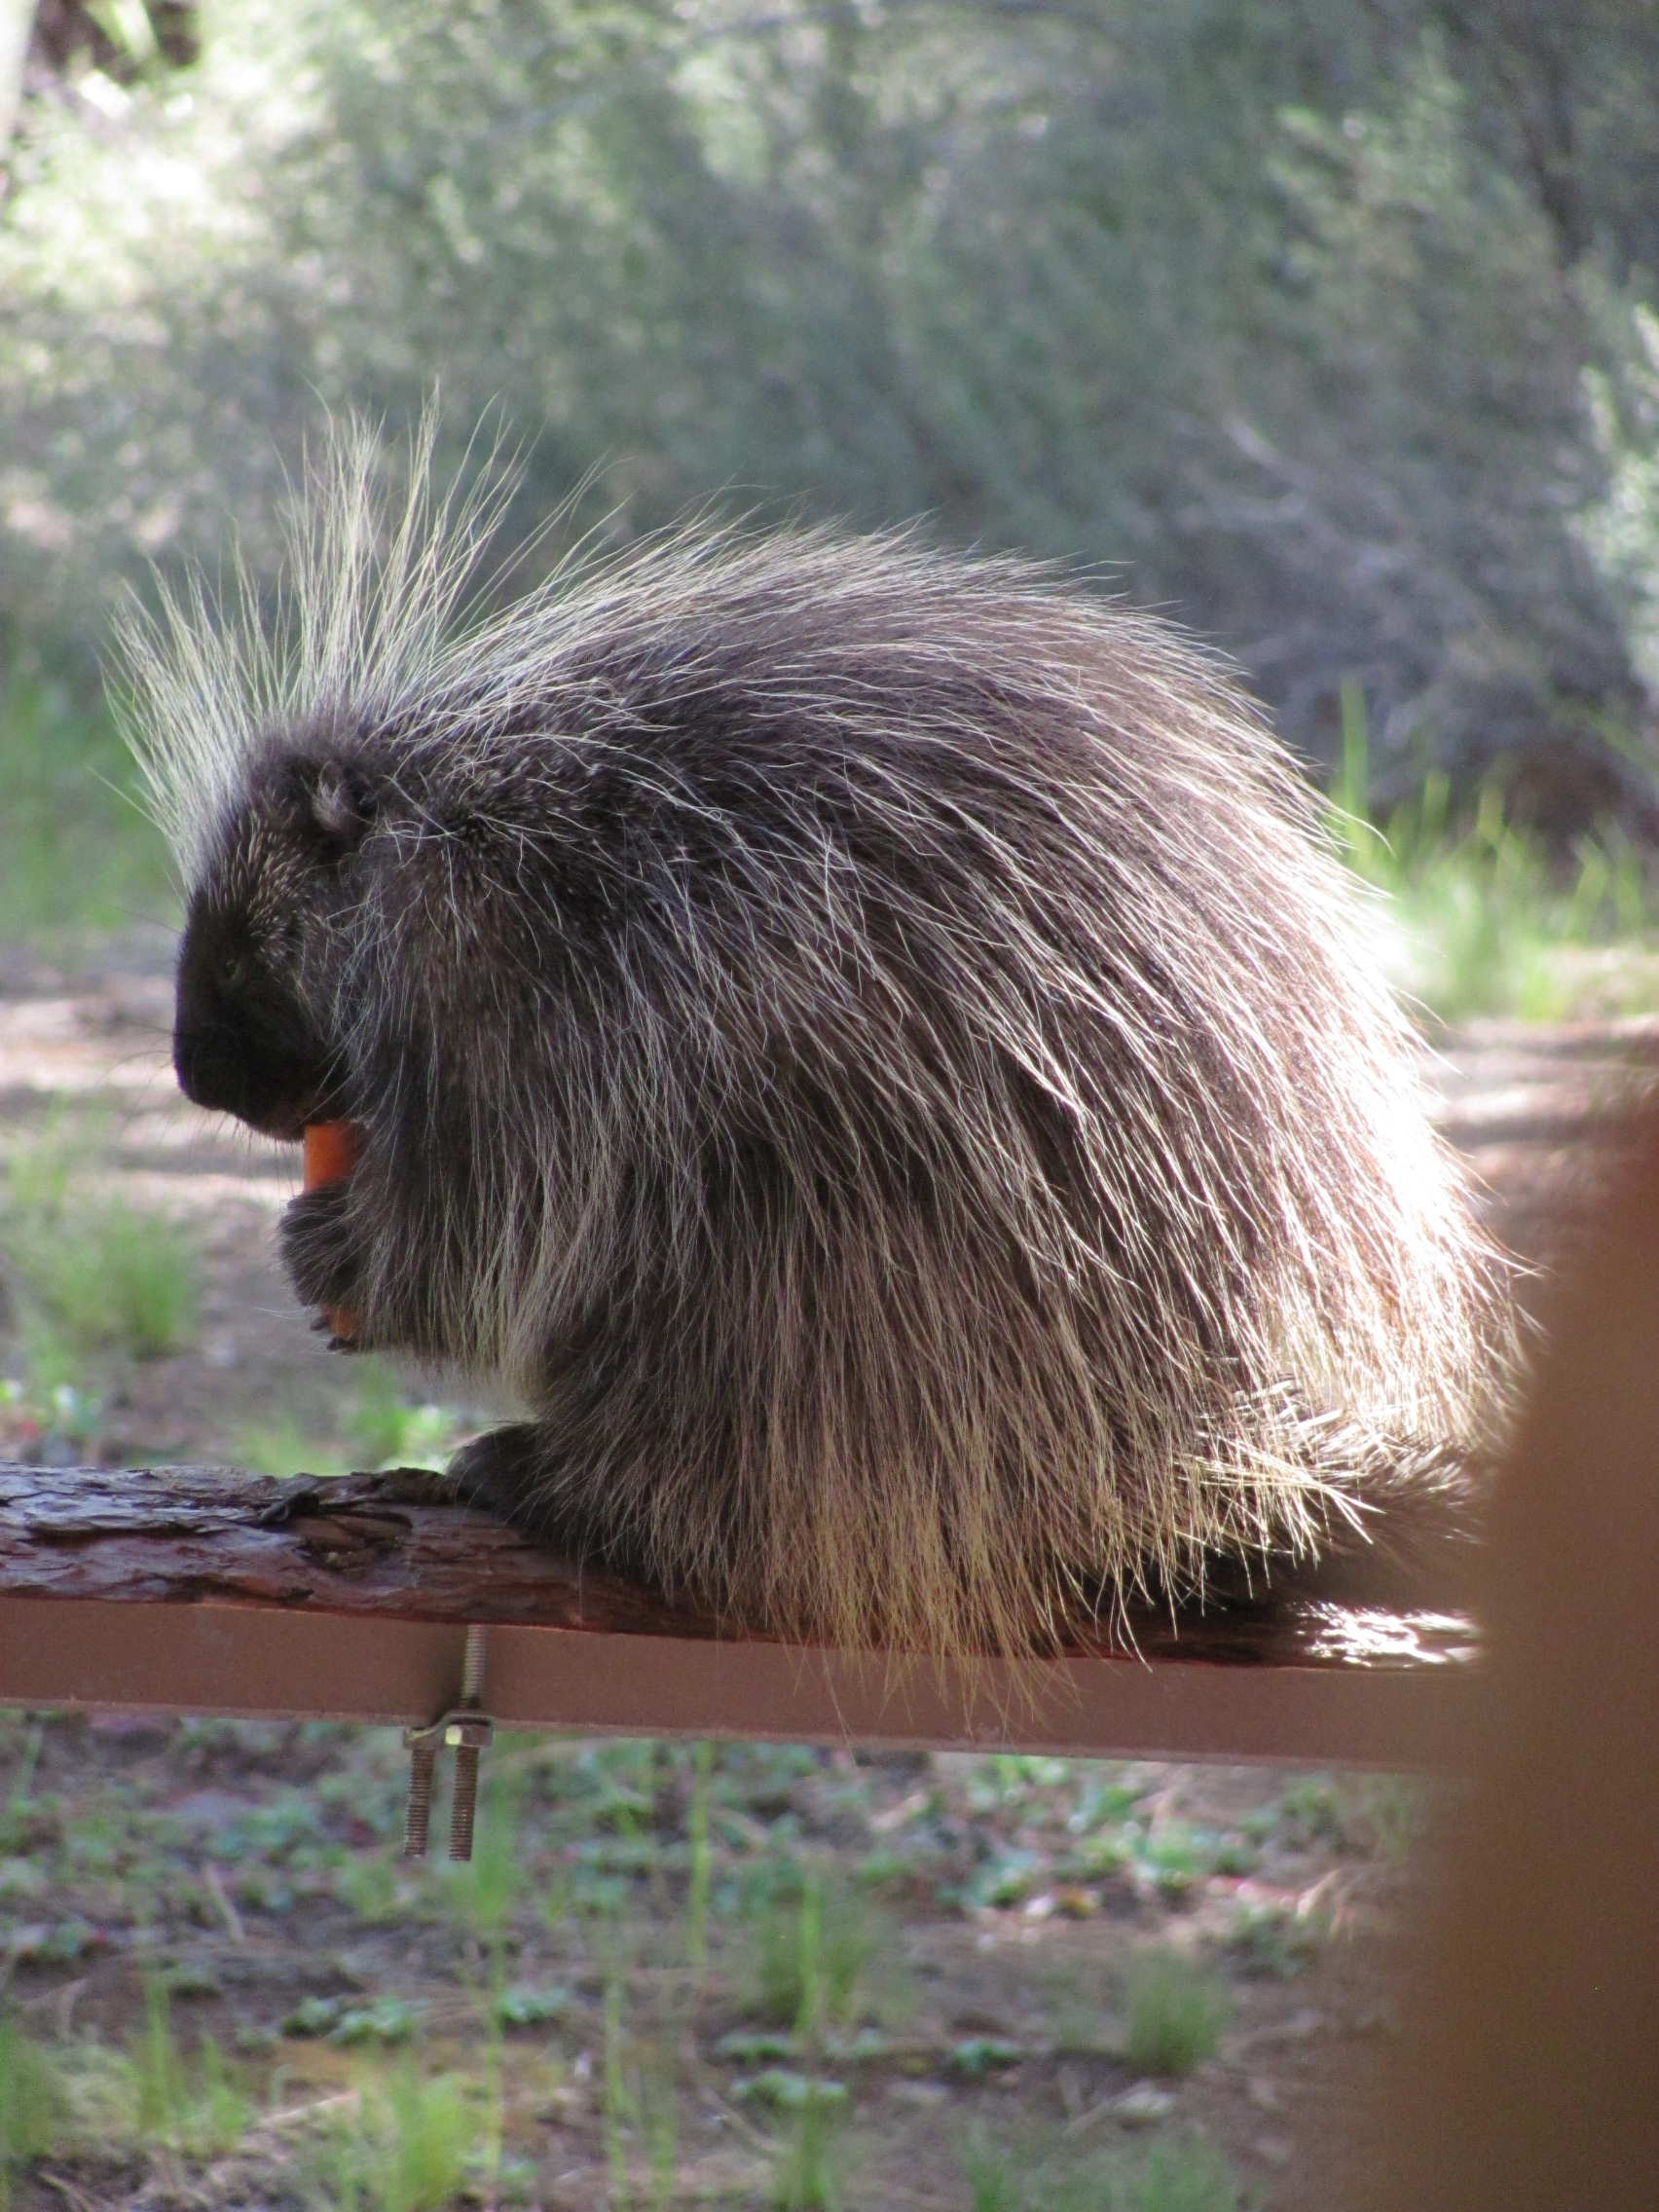 Cheerful looking porcupine eating a carrot.